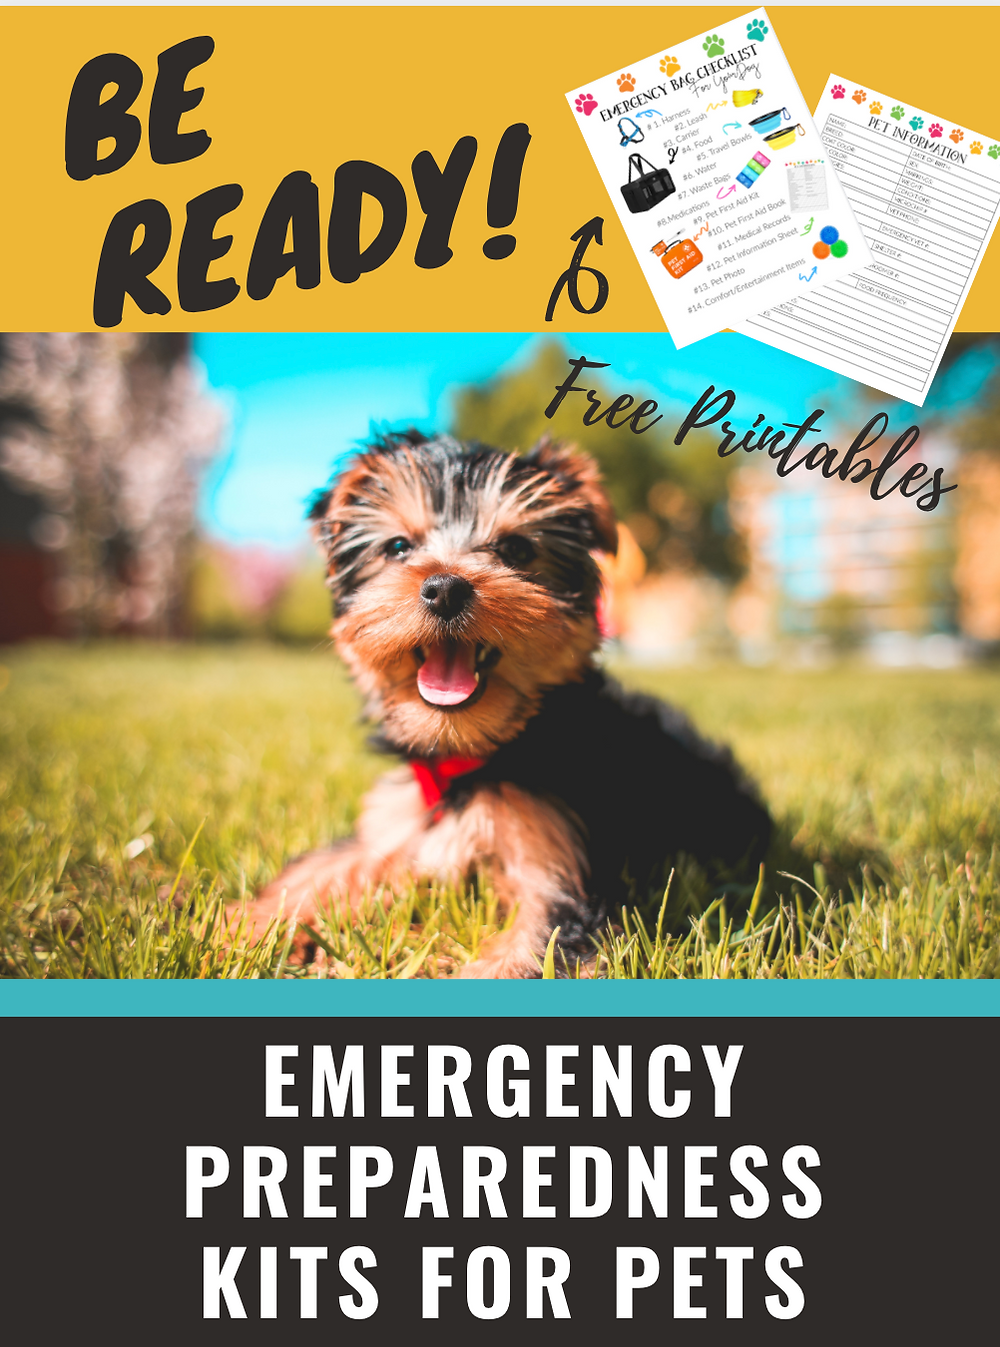 Dog with emergency disaster kit for pets